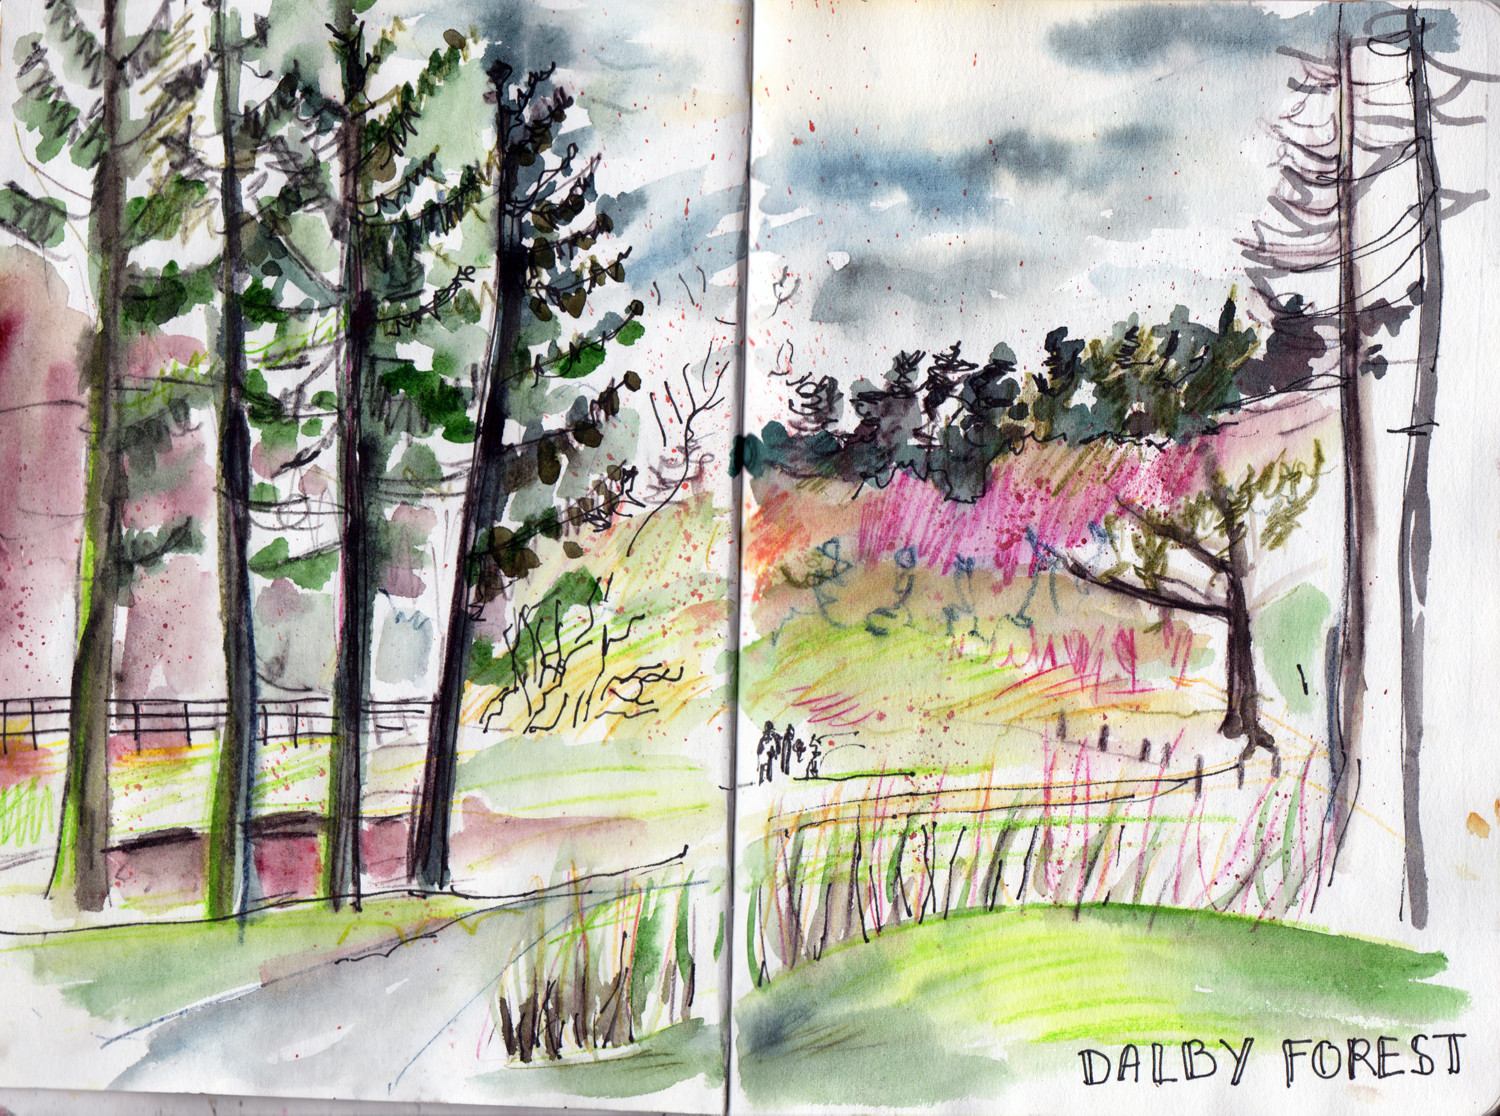 Darby forest Pen and Watercolour sketch by Sophie Peanut